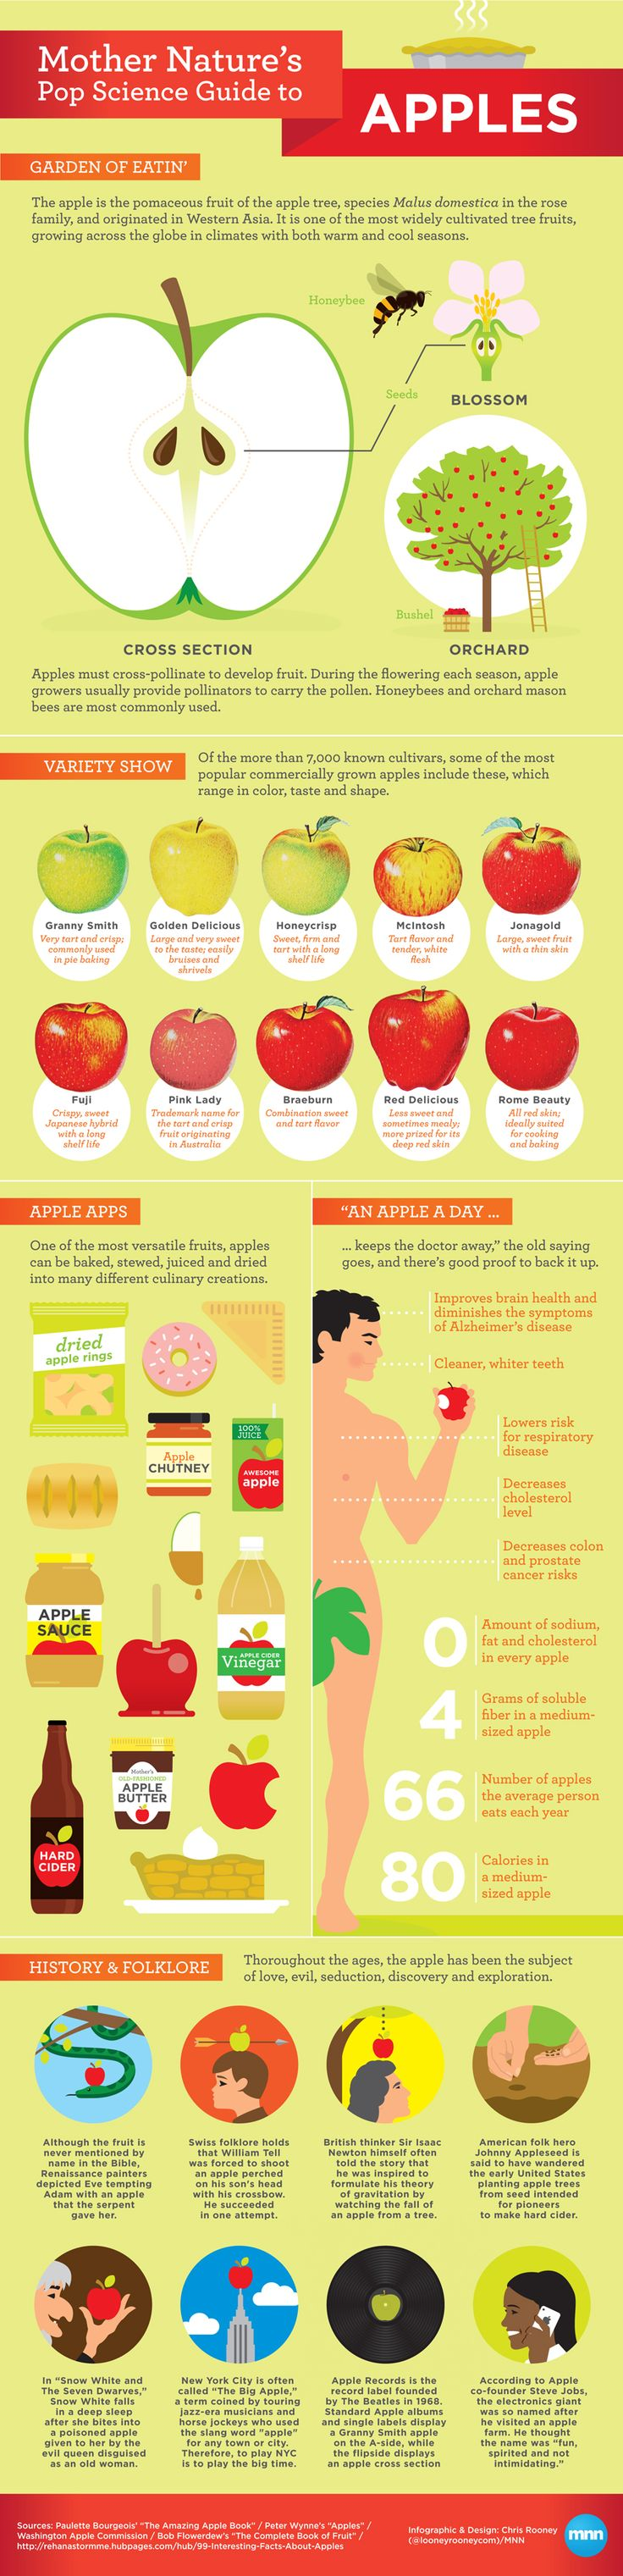 All sizes | Mother Nature's Pop Science Guide to Apples infographic!